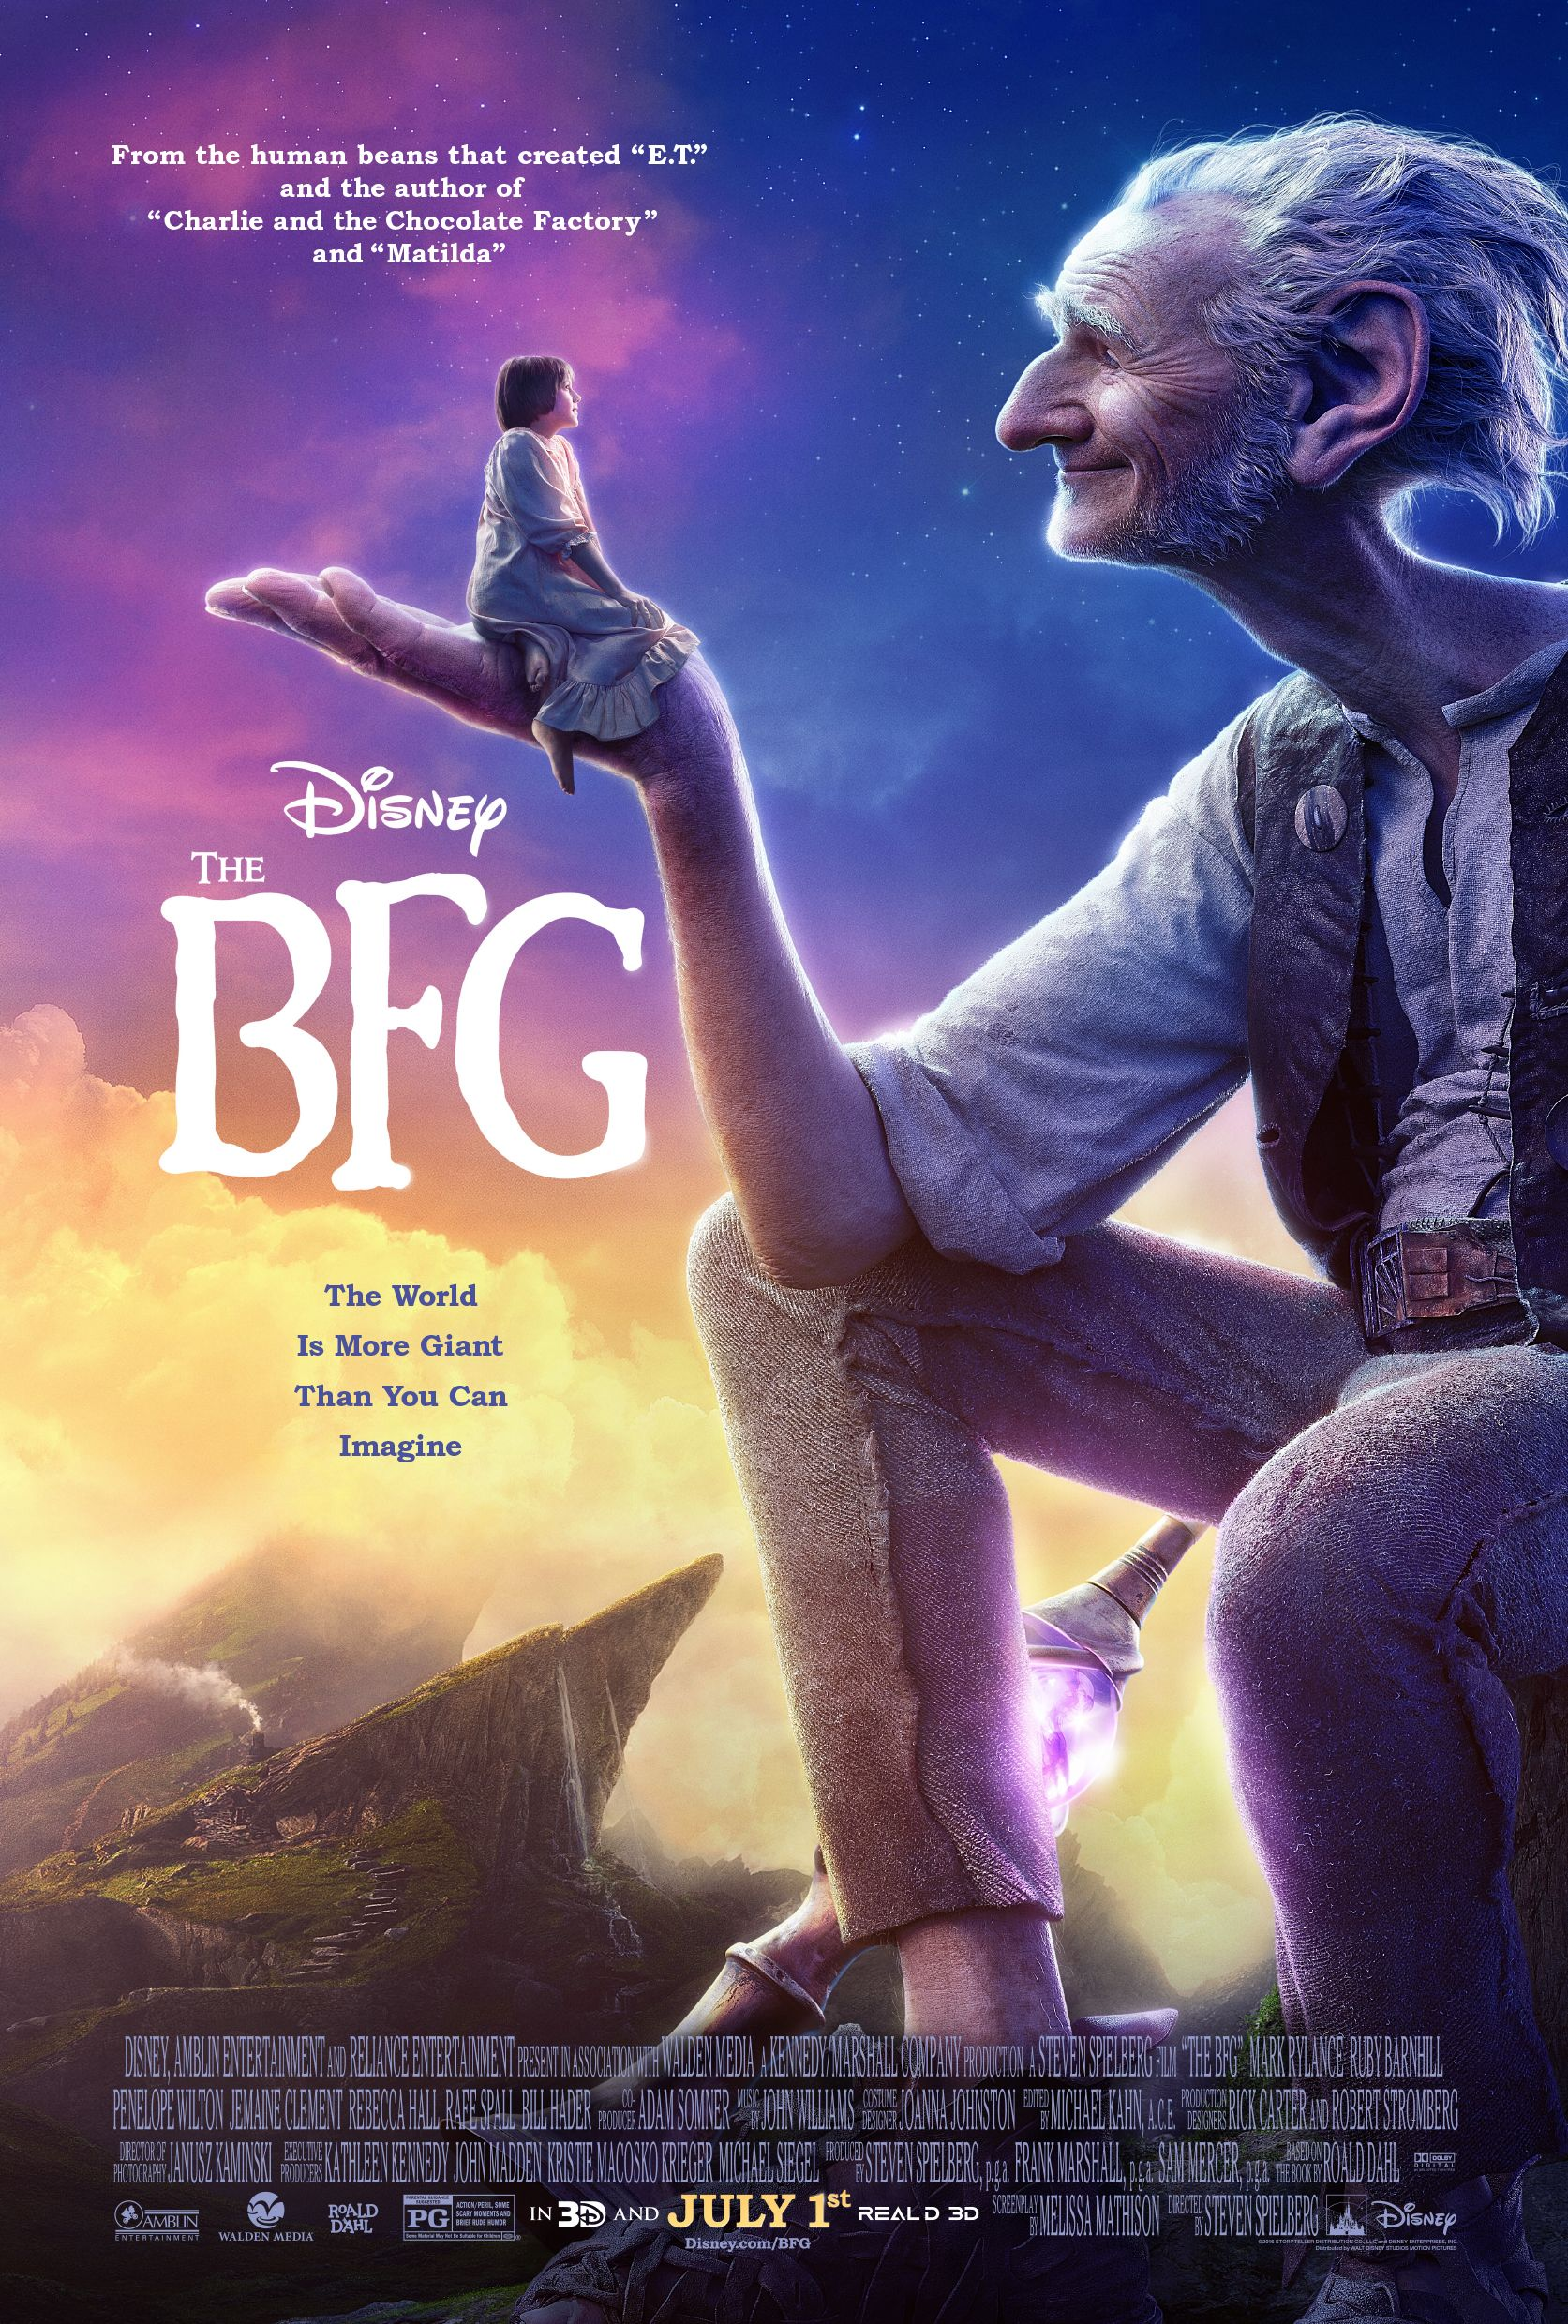 New poster for 'The BFG'